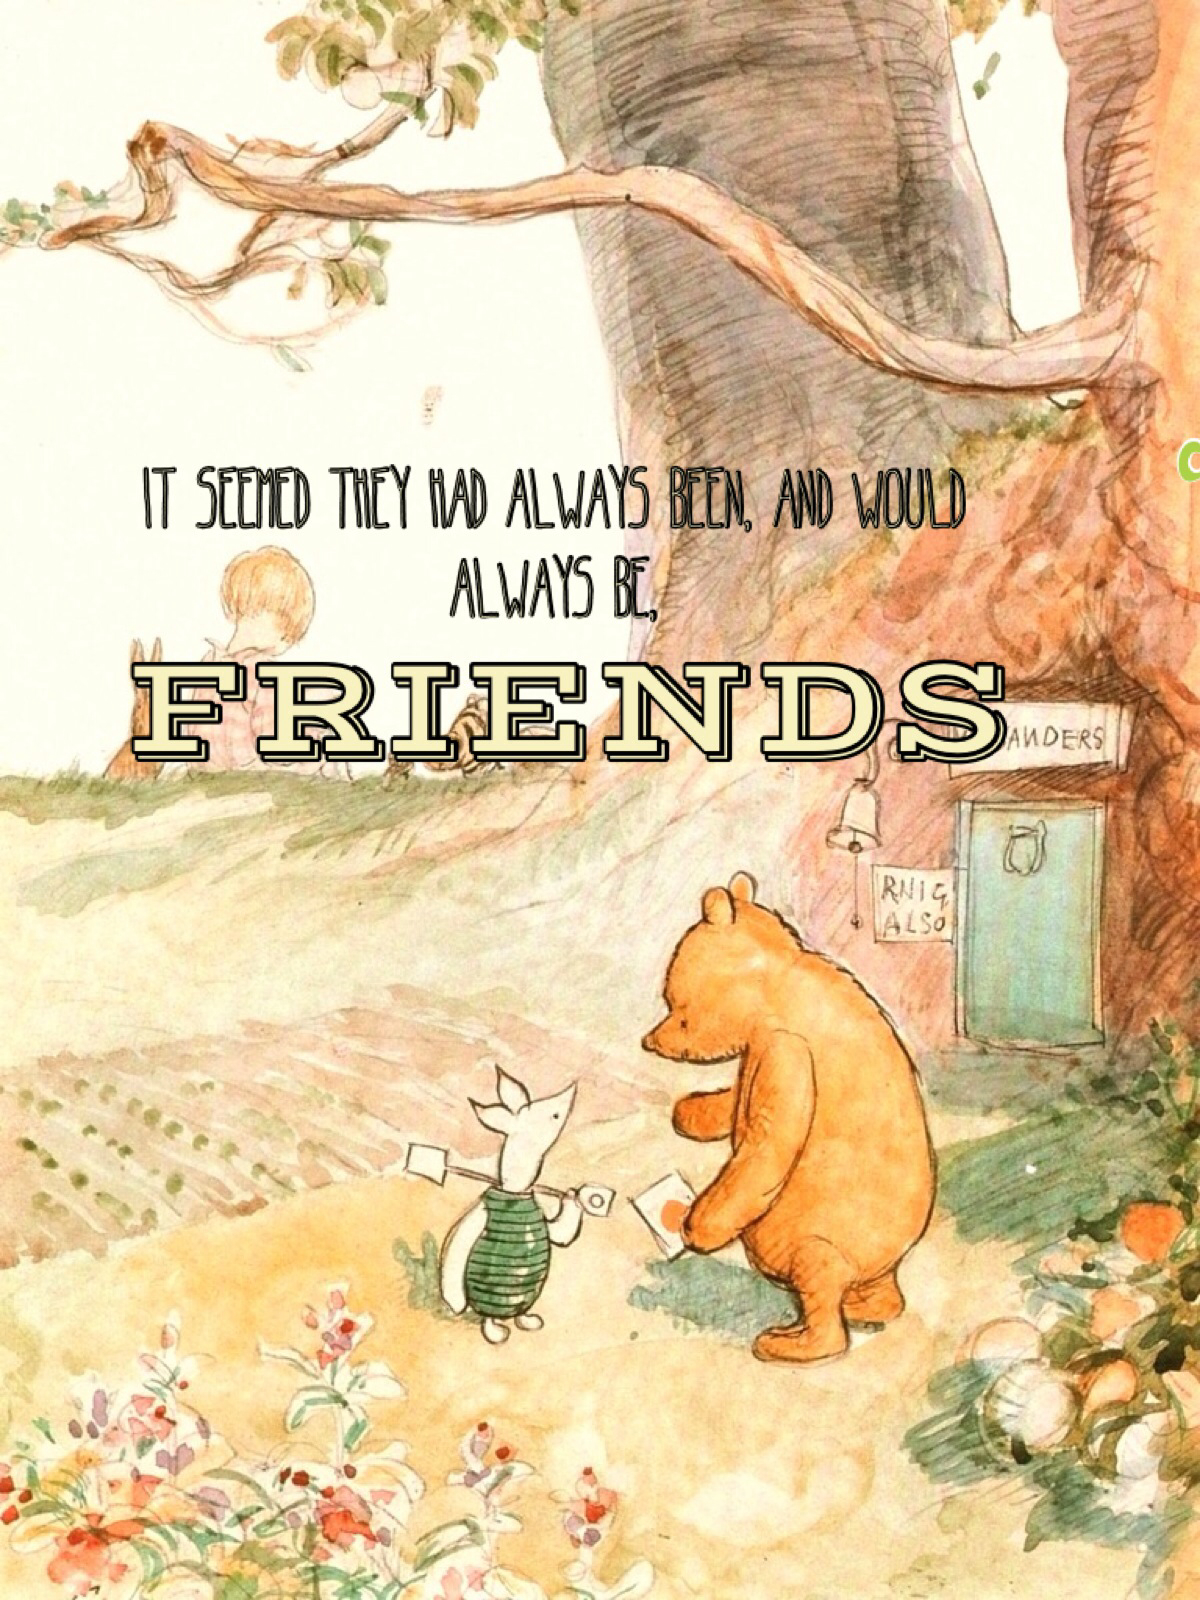 Winnie The Pooh Quote About Friendship Robin  Upload Mega Quotes